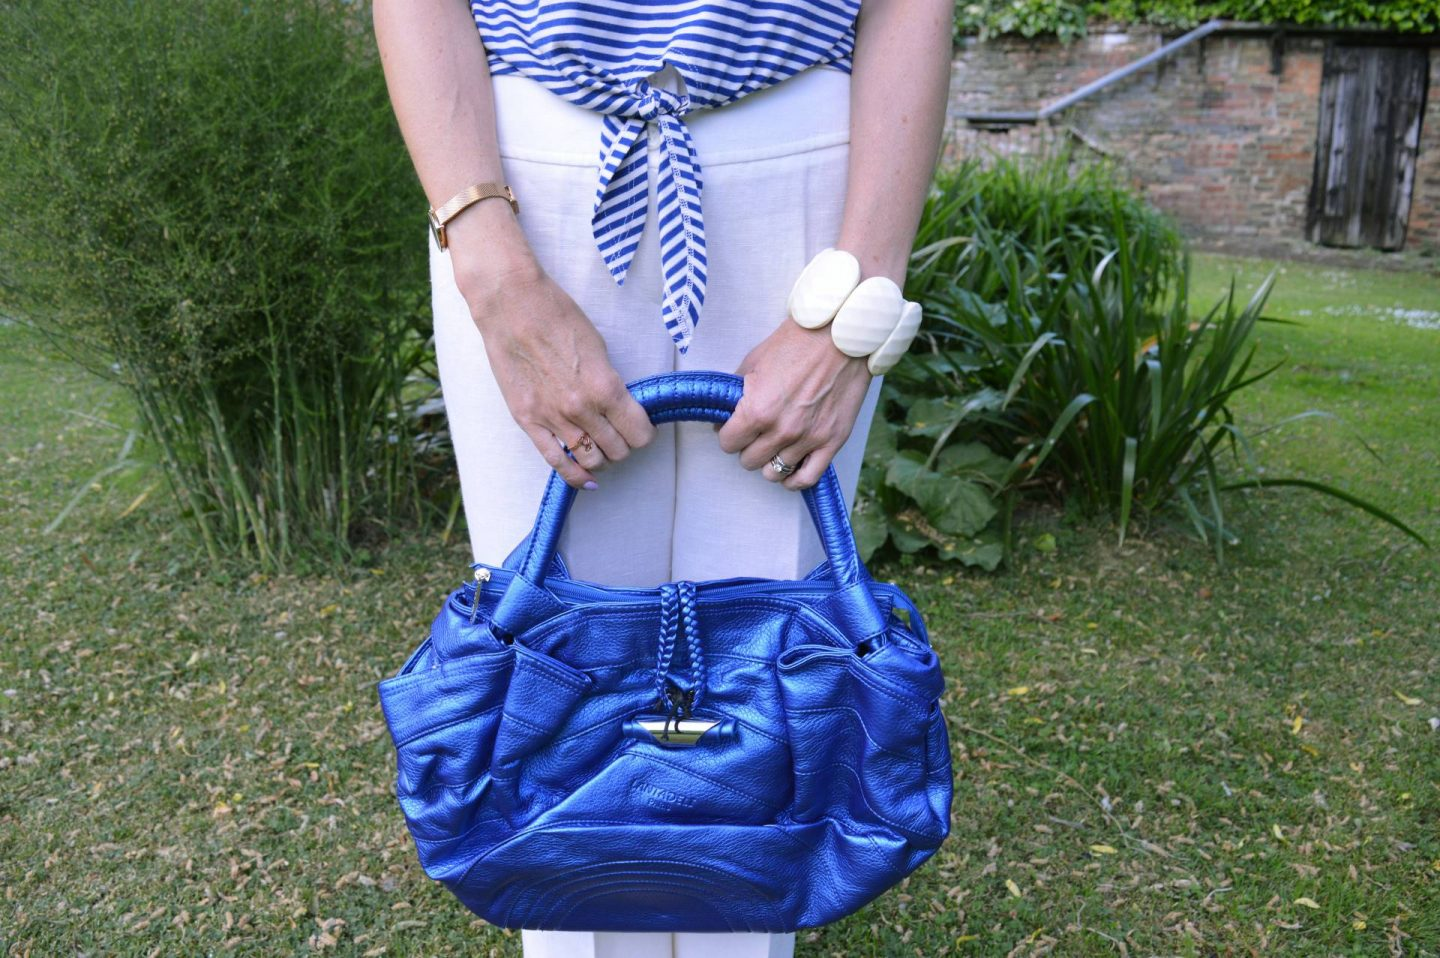 metallic blue bag